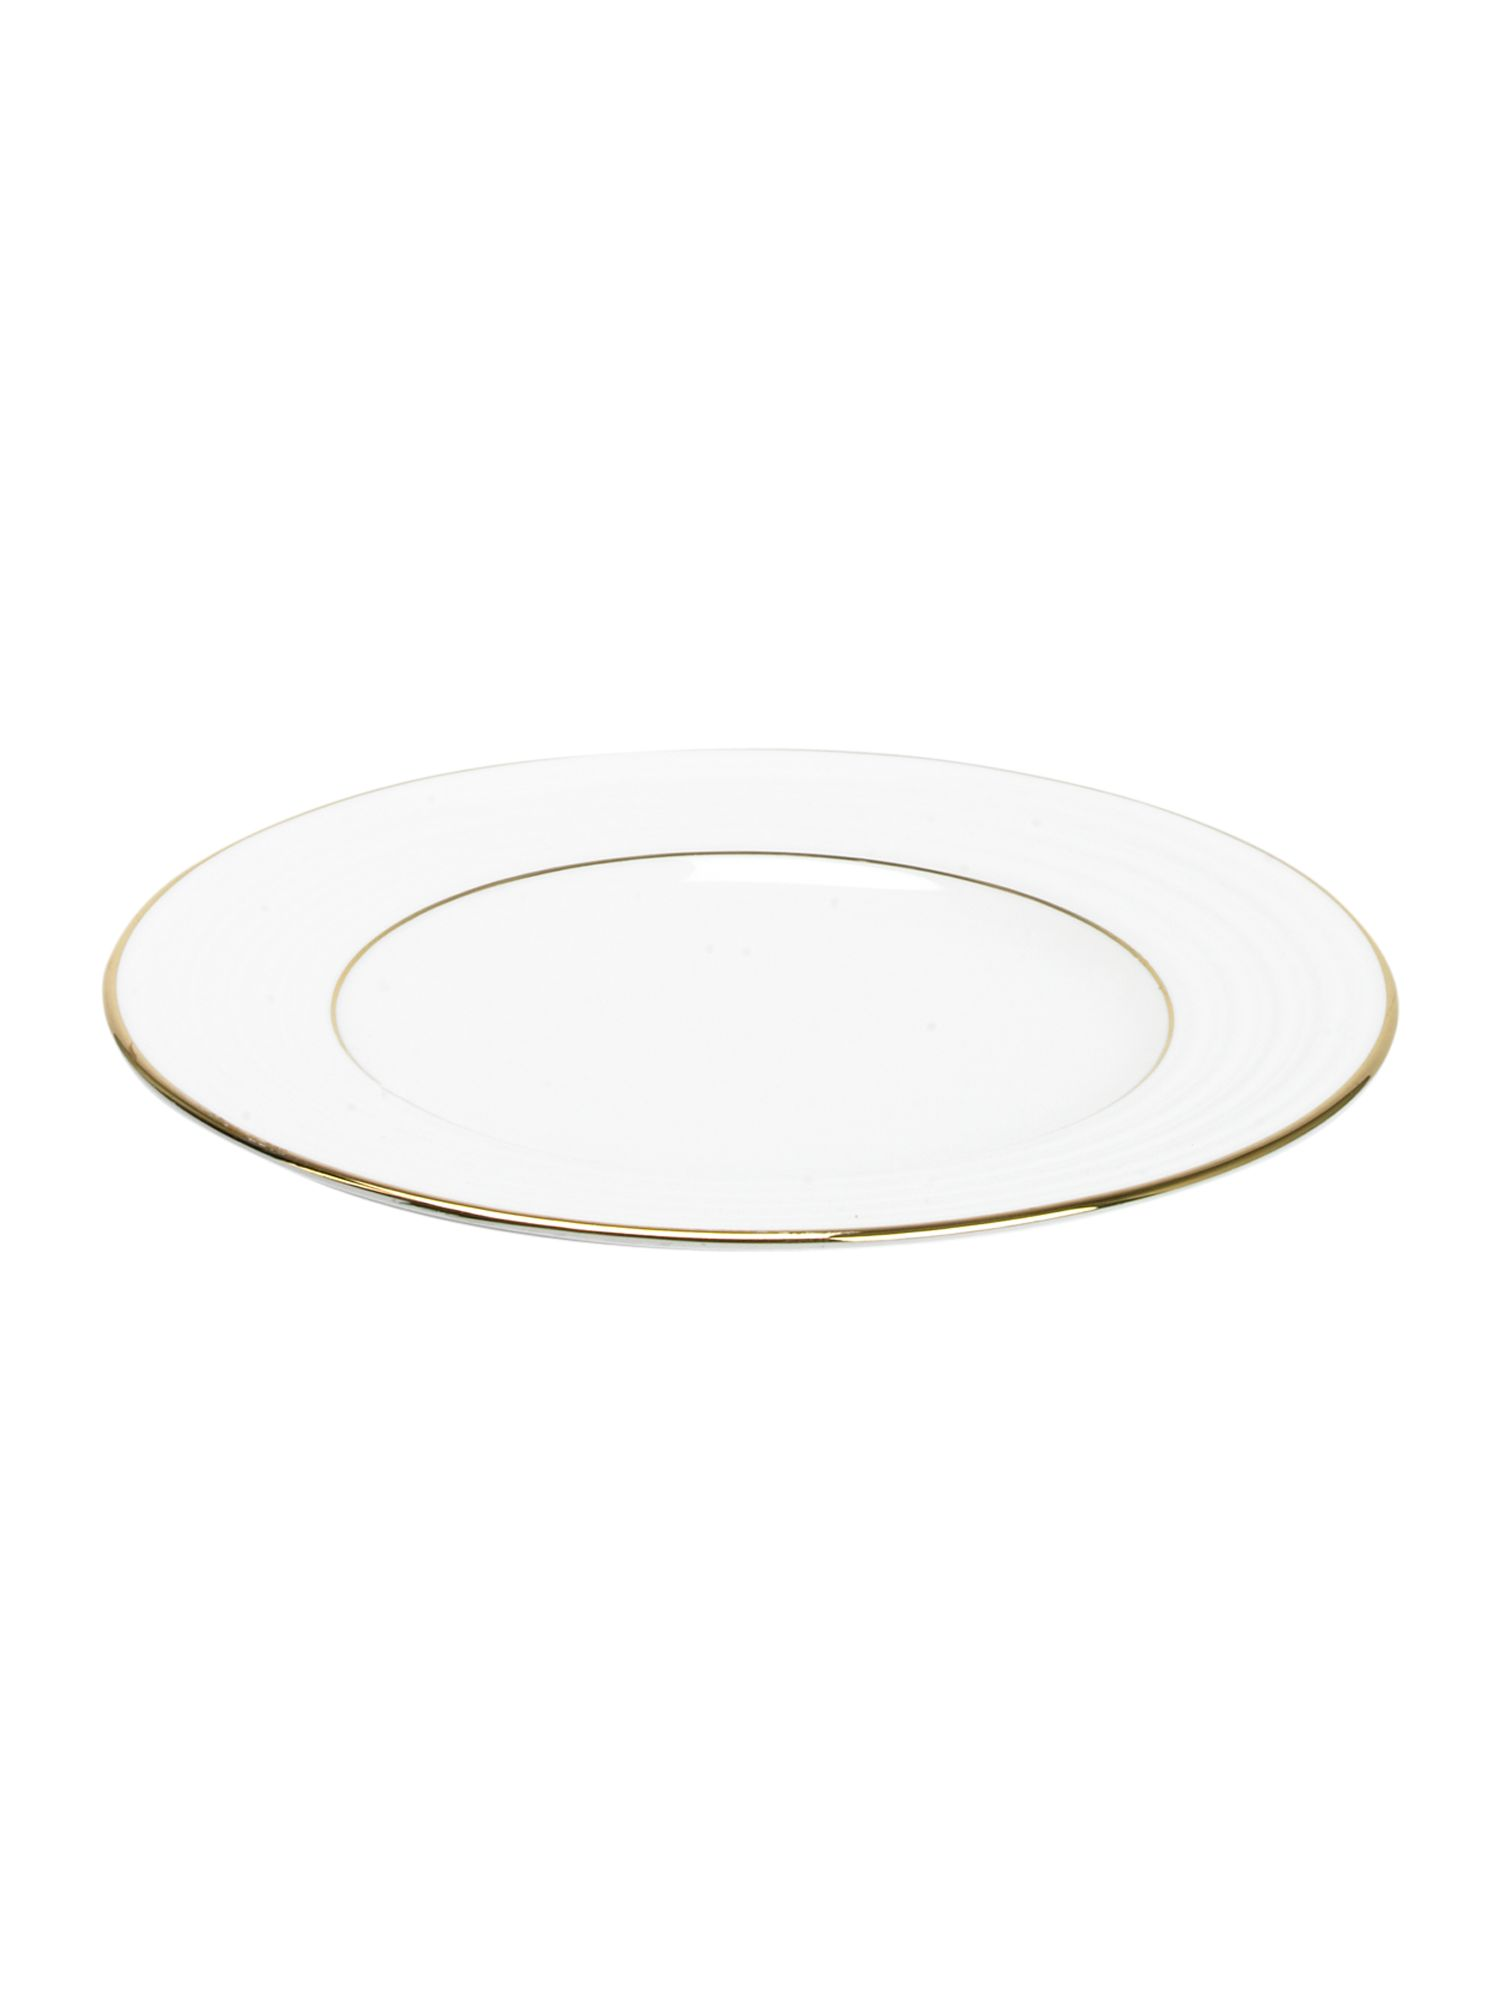 Soho gold bone china salad plate